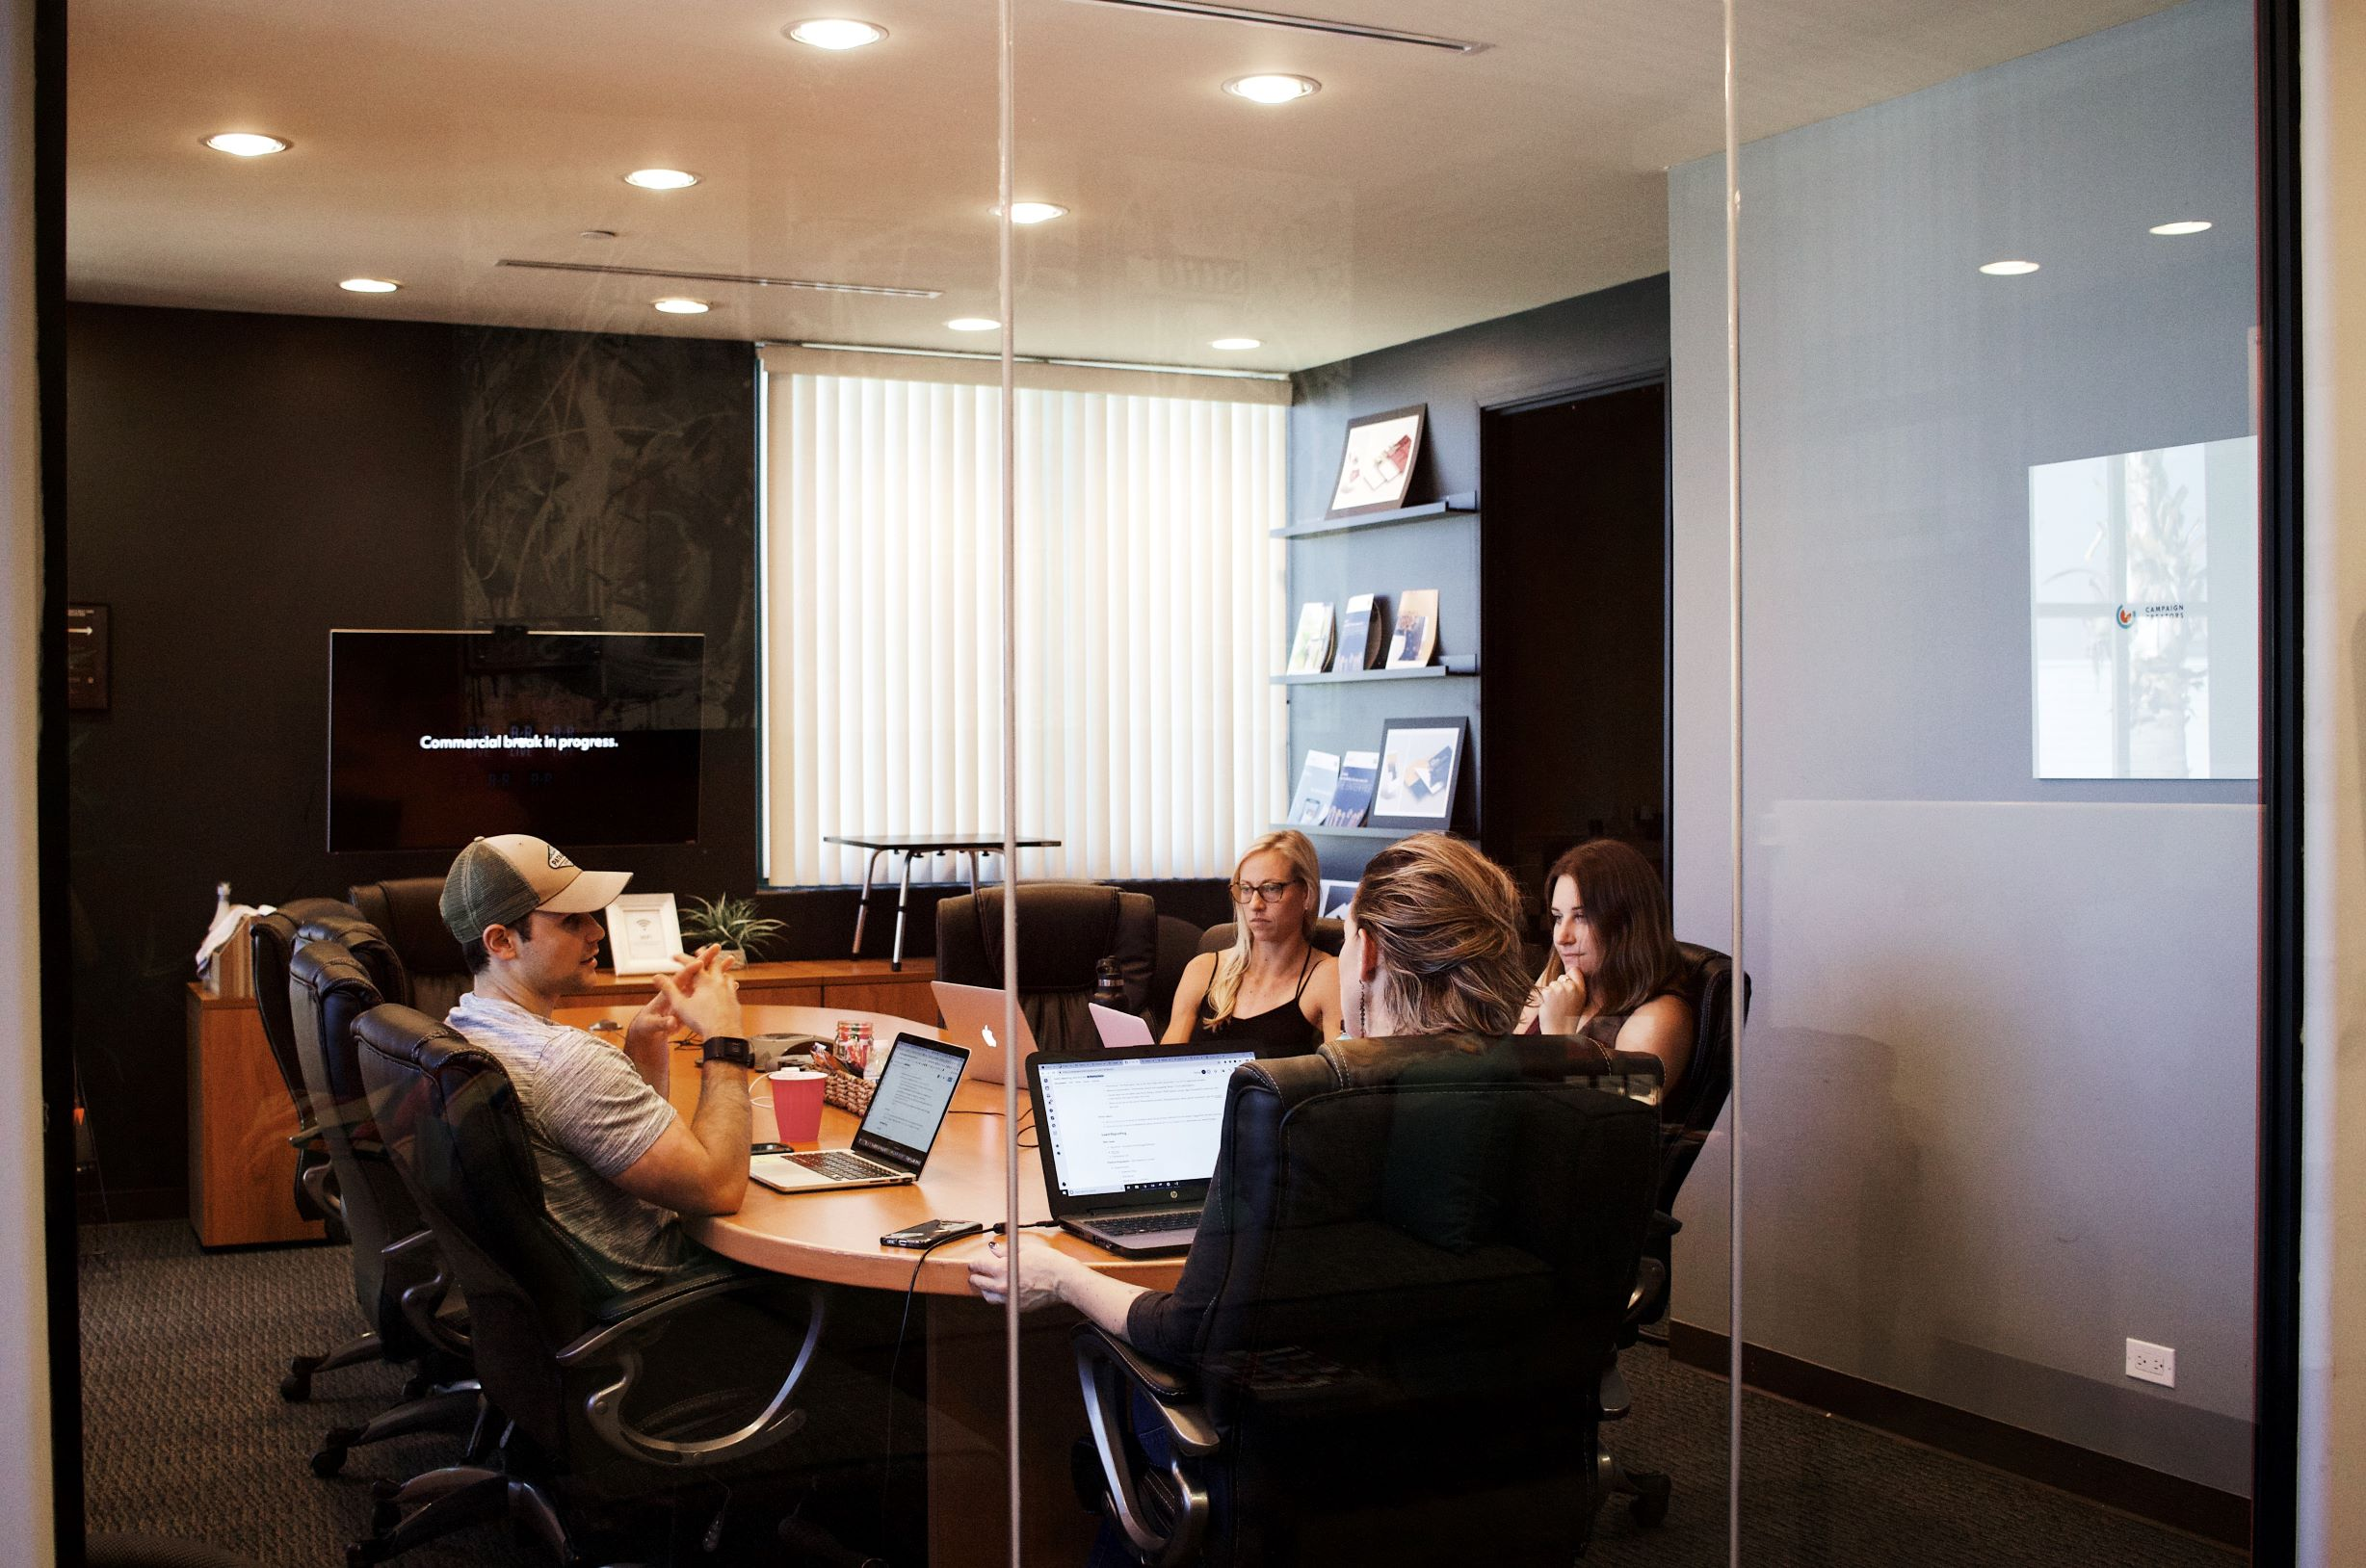 Four People Meeting In A Conference Room